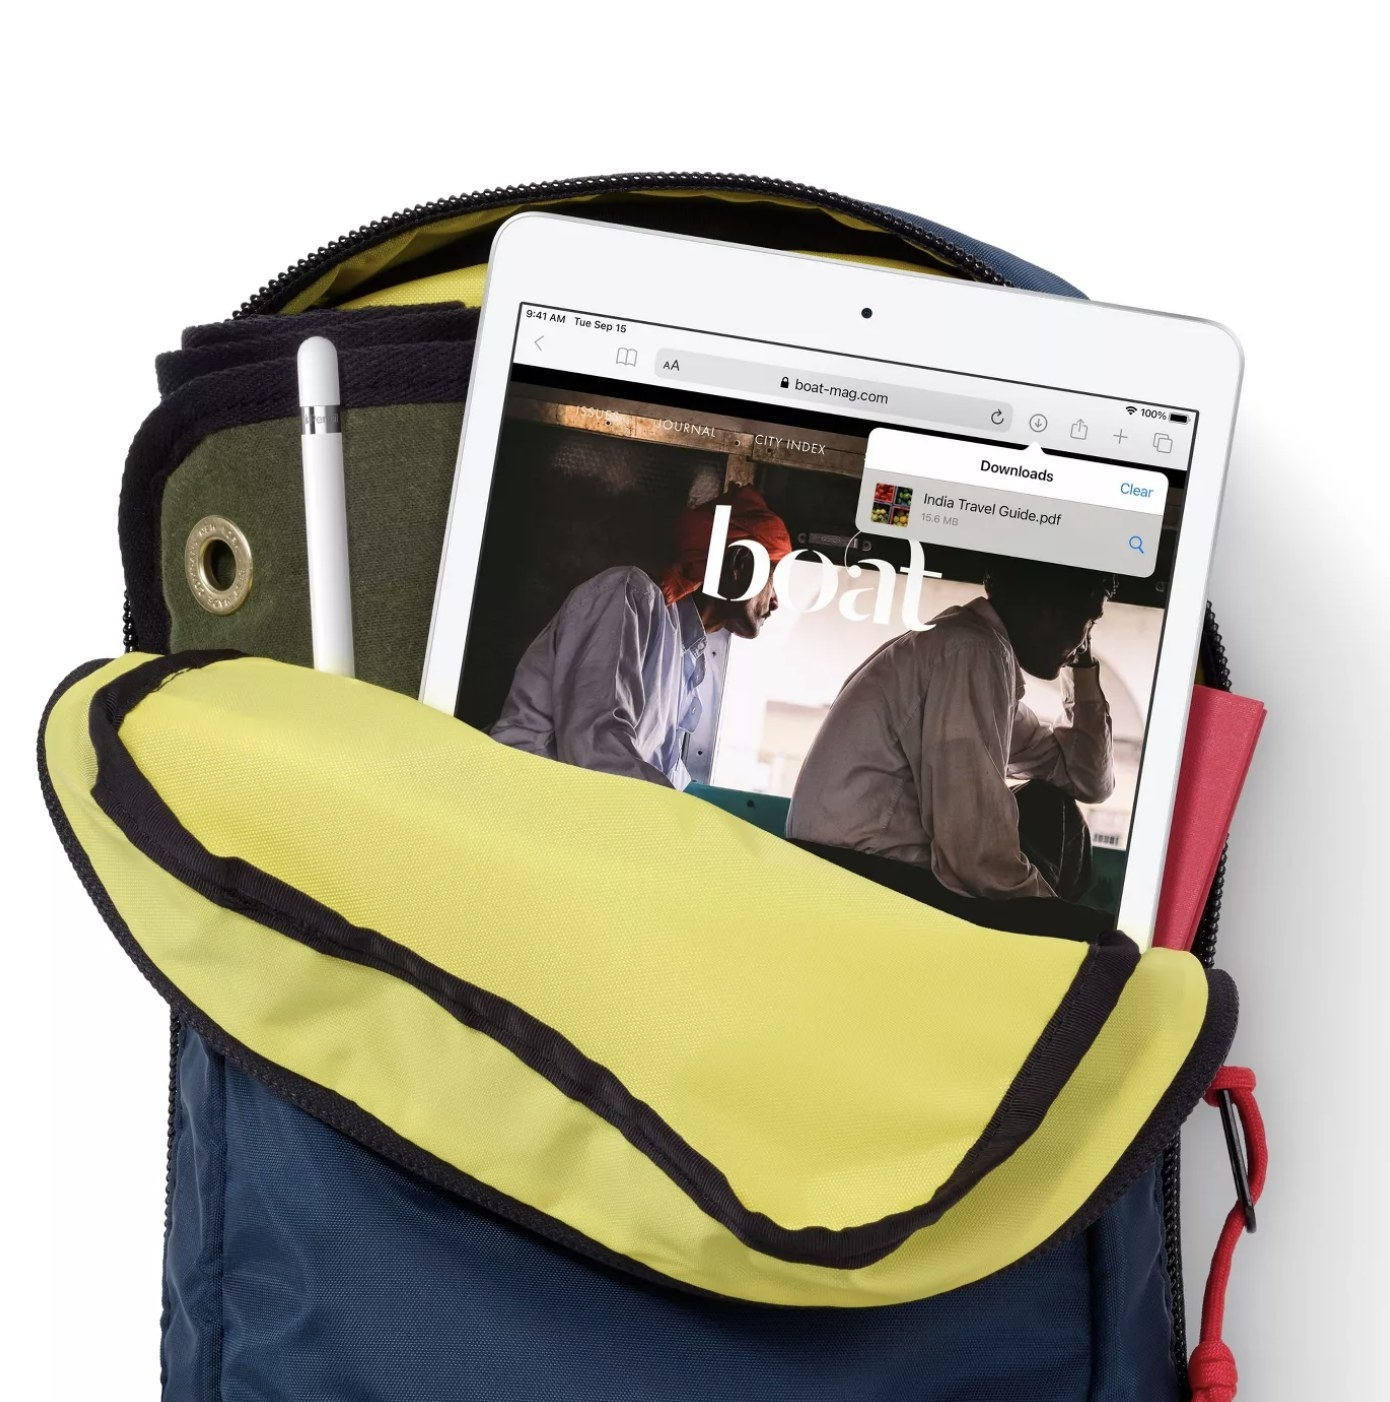 The iPad in a backpack